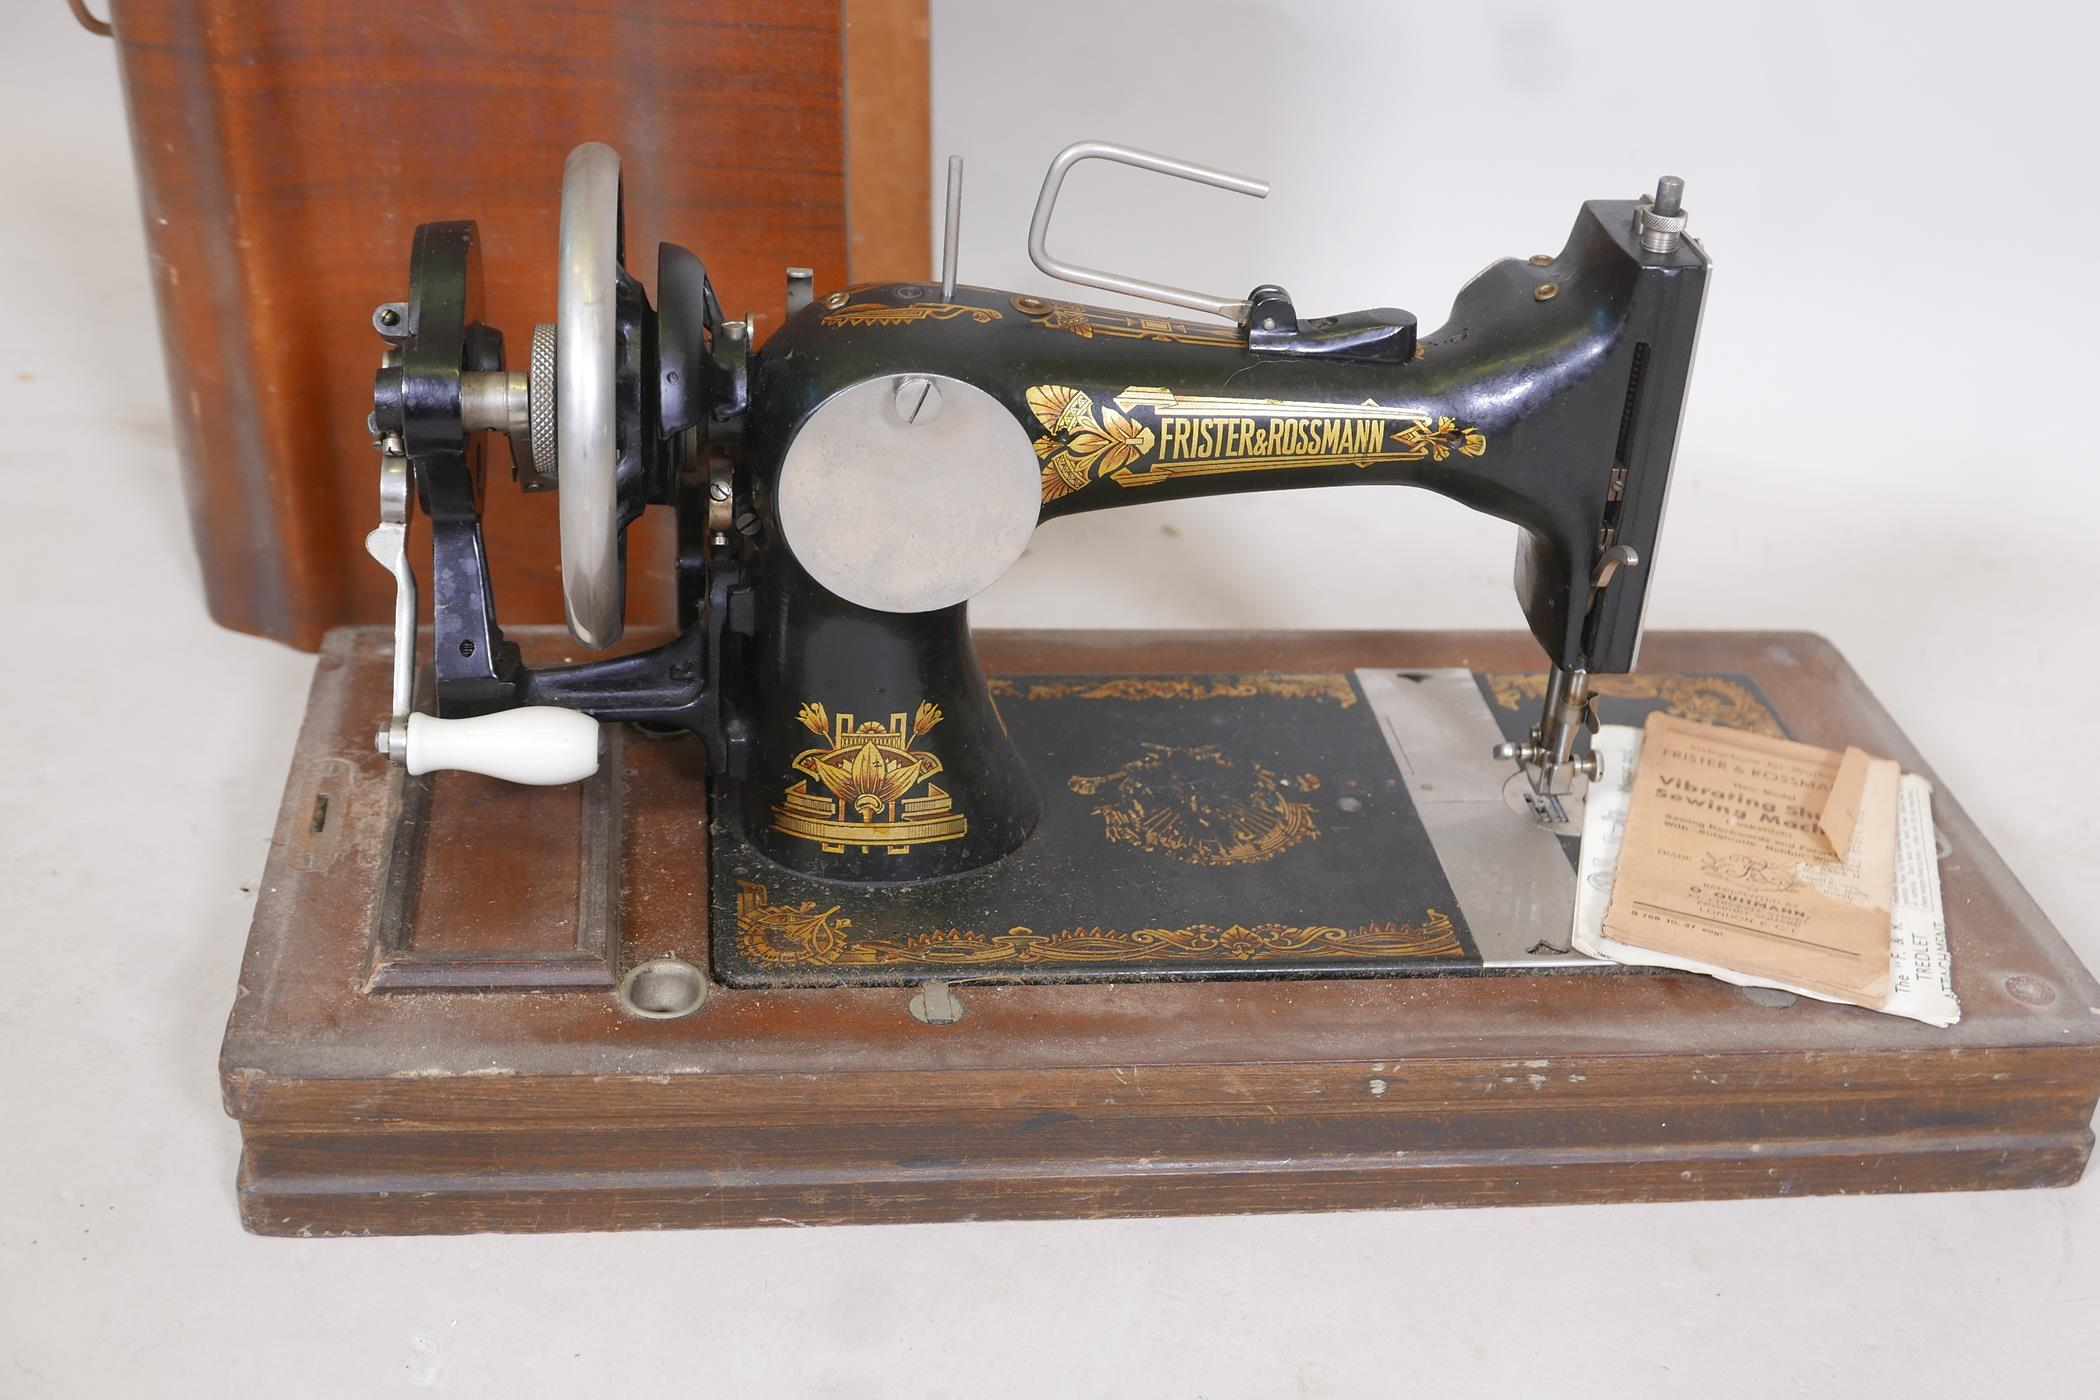 """A Frister & Rossman antique sewing machine in case, 21"""" x 13"""" x 10"""" - Image 2 of 2"""